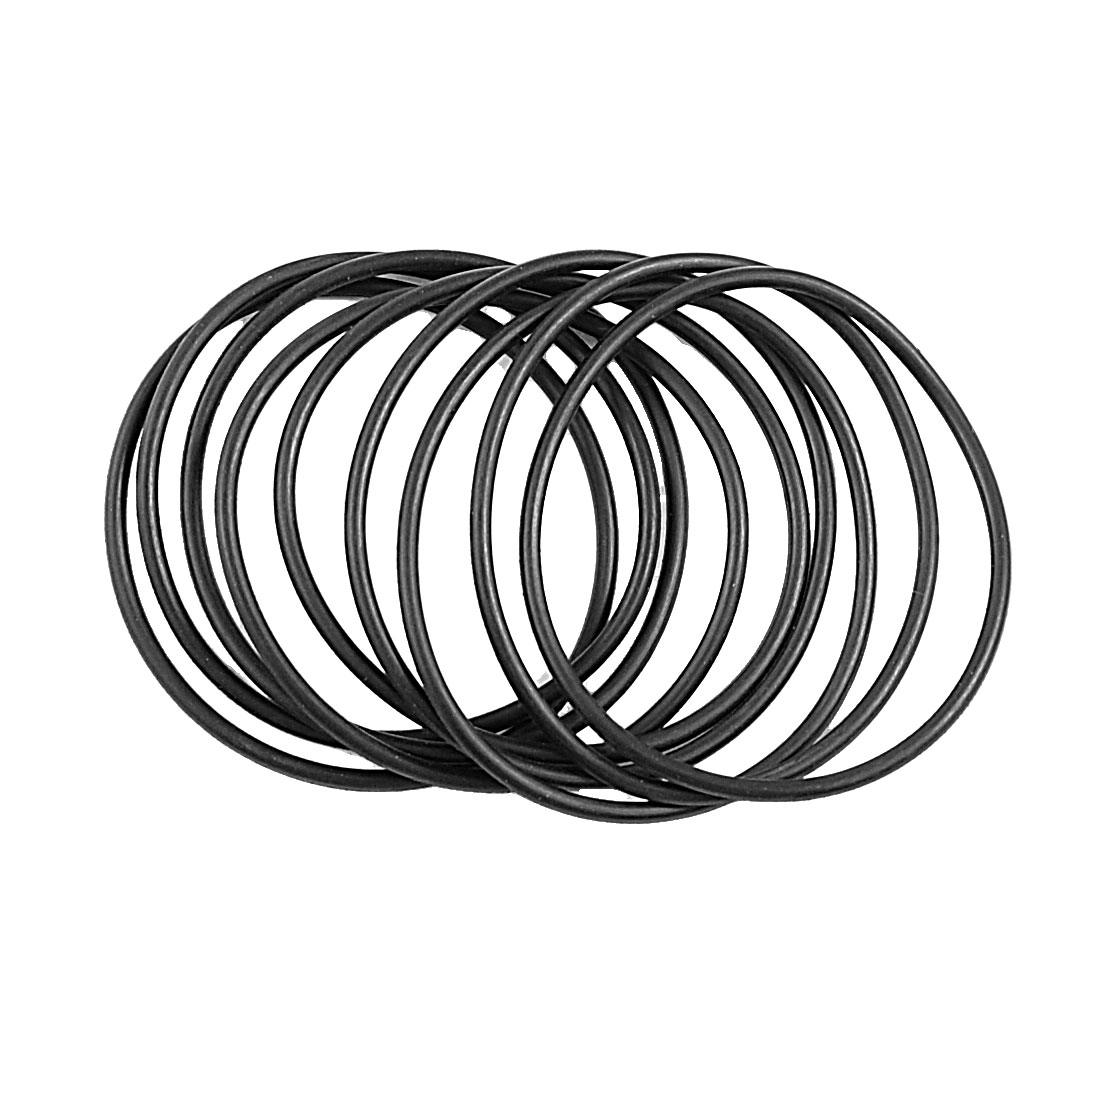 10 Pcs Metric O Rings Black Nitrile Rubber 47mm OD 2mm Thick